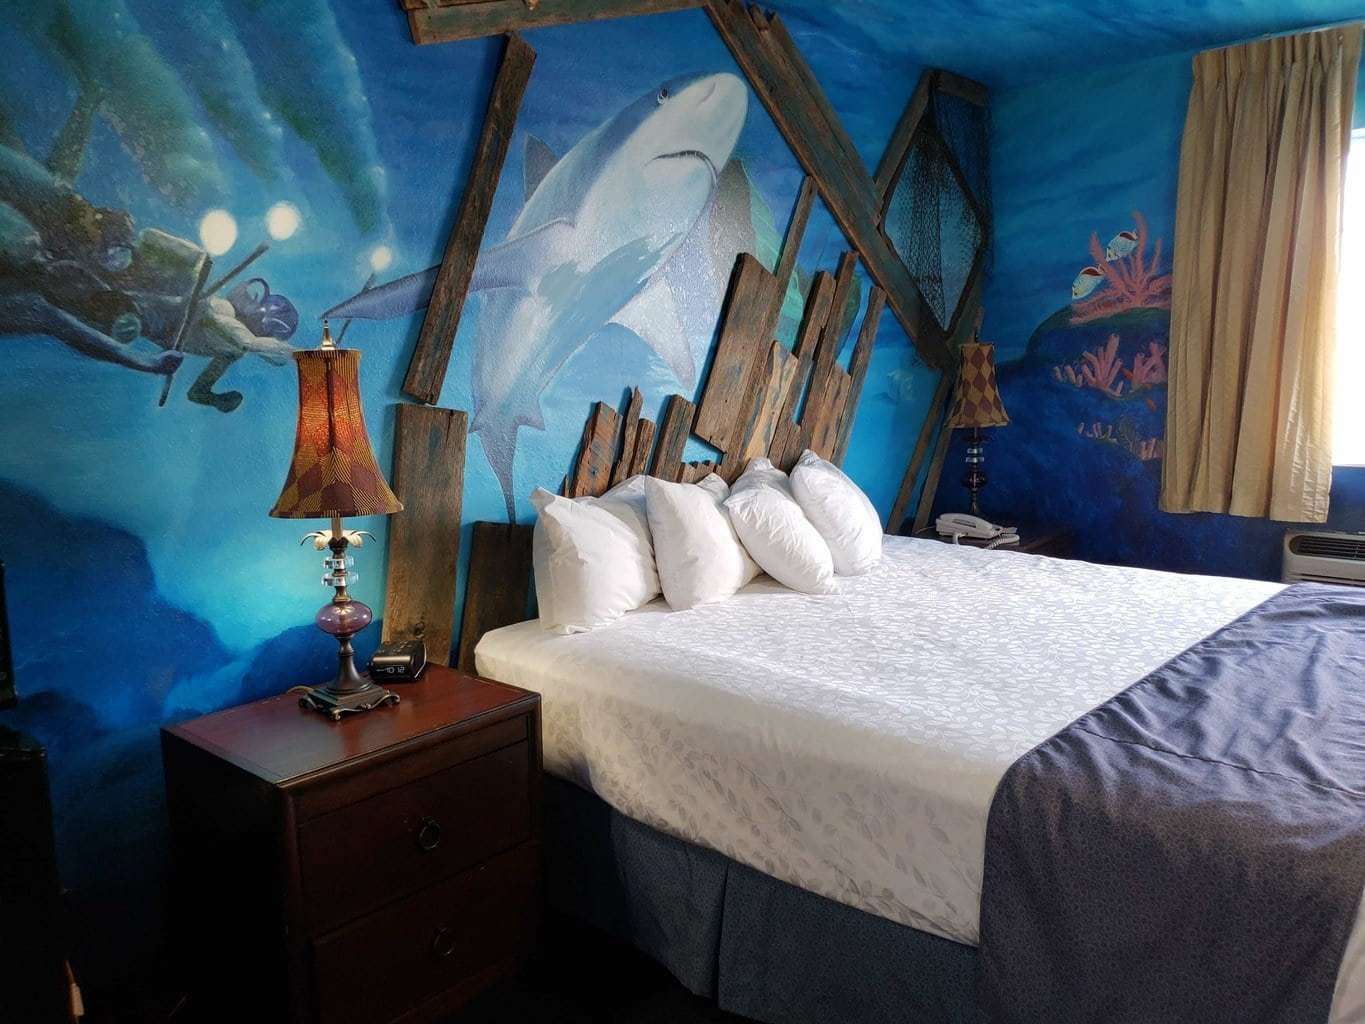 2000 leagues under the sea at stone castle hotel